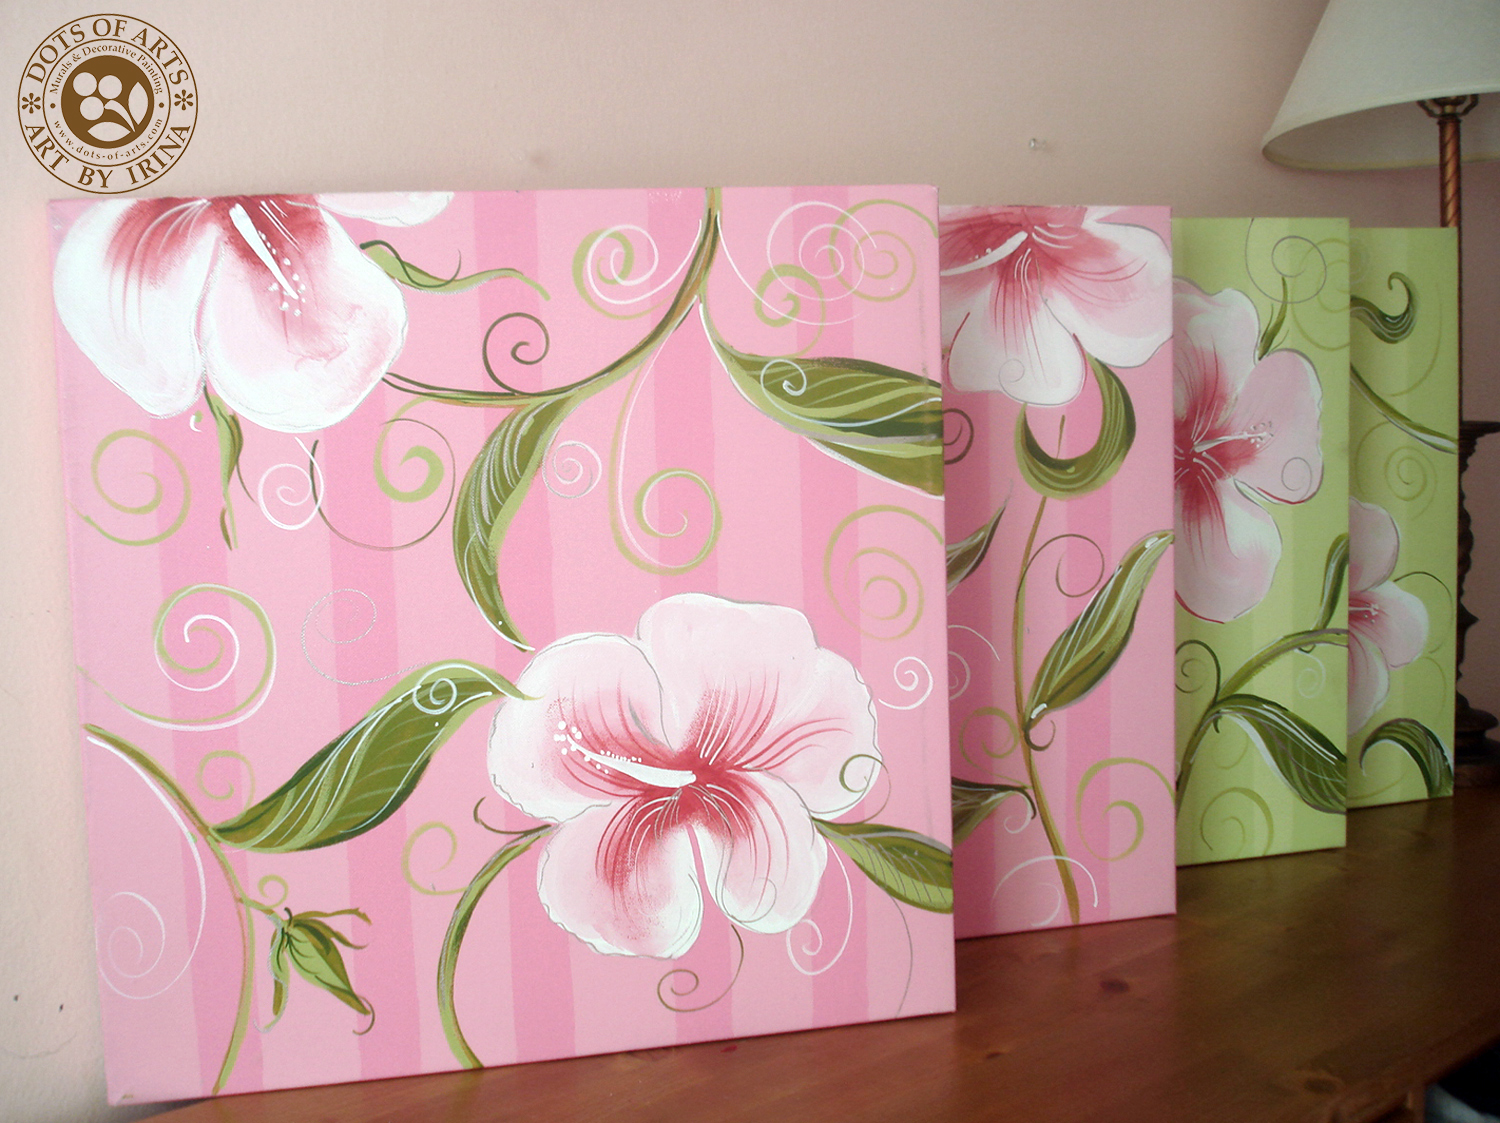 decorative-painting-canvases-custom-dots-of-arts-accessories-four-pink-flower-green-stripes.jpg